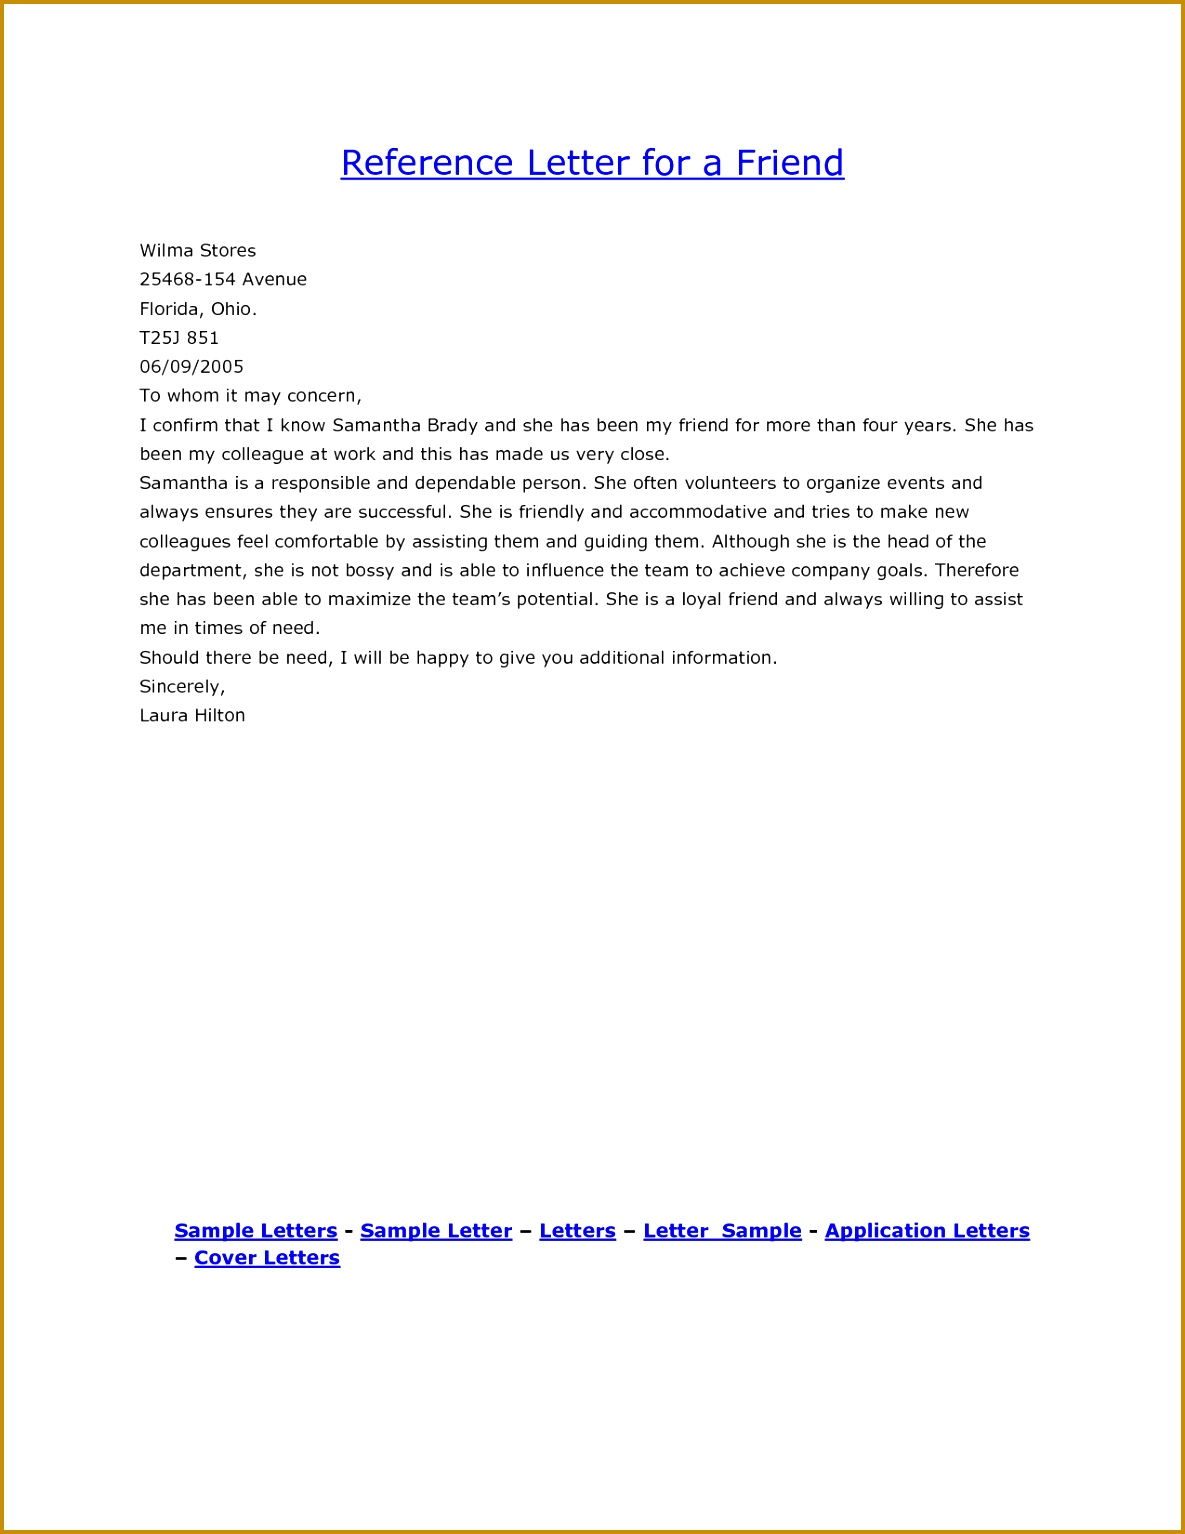 Cover Letter Exles Reference For A Friend Personal 15341185